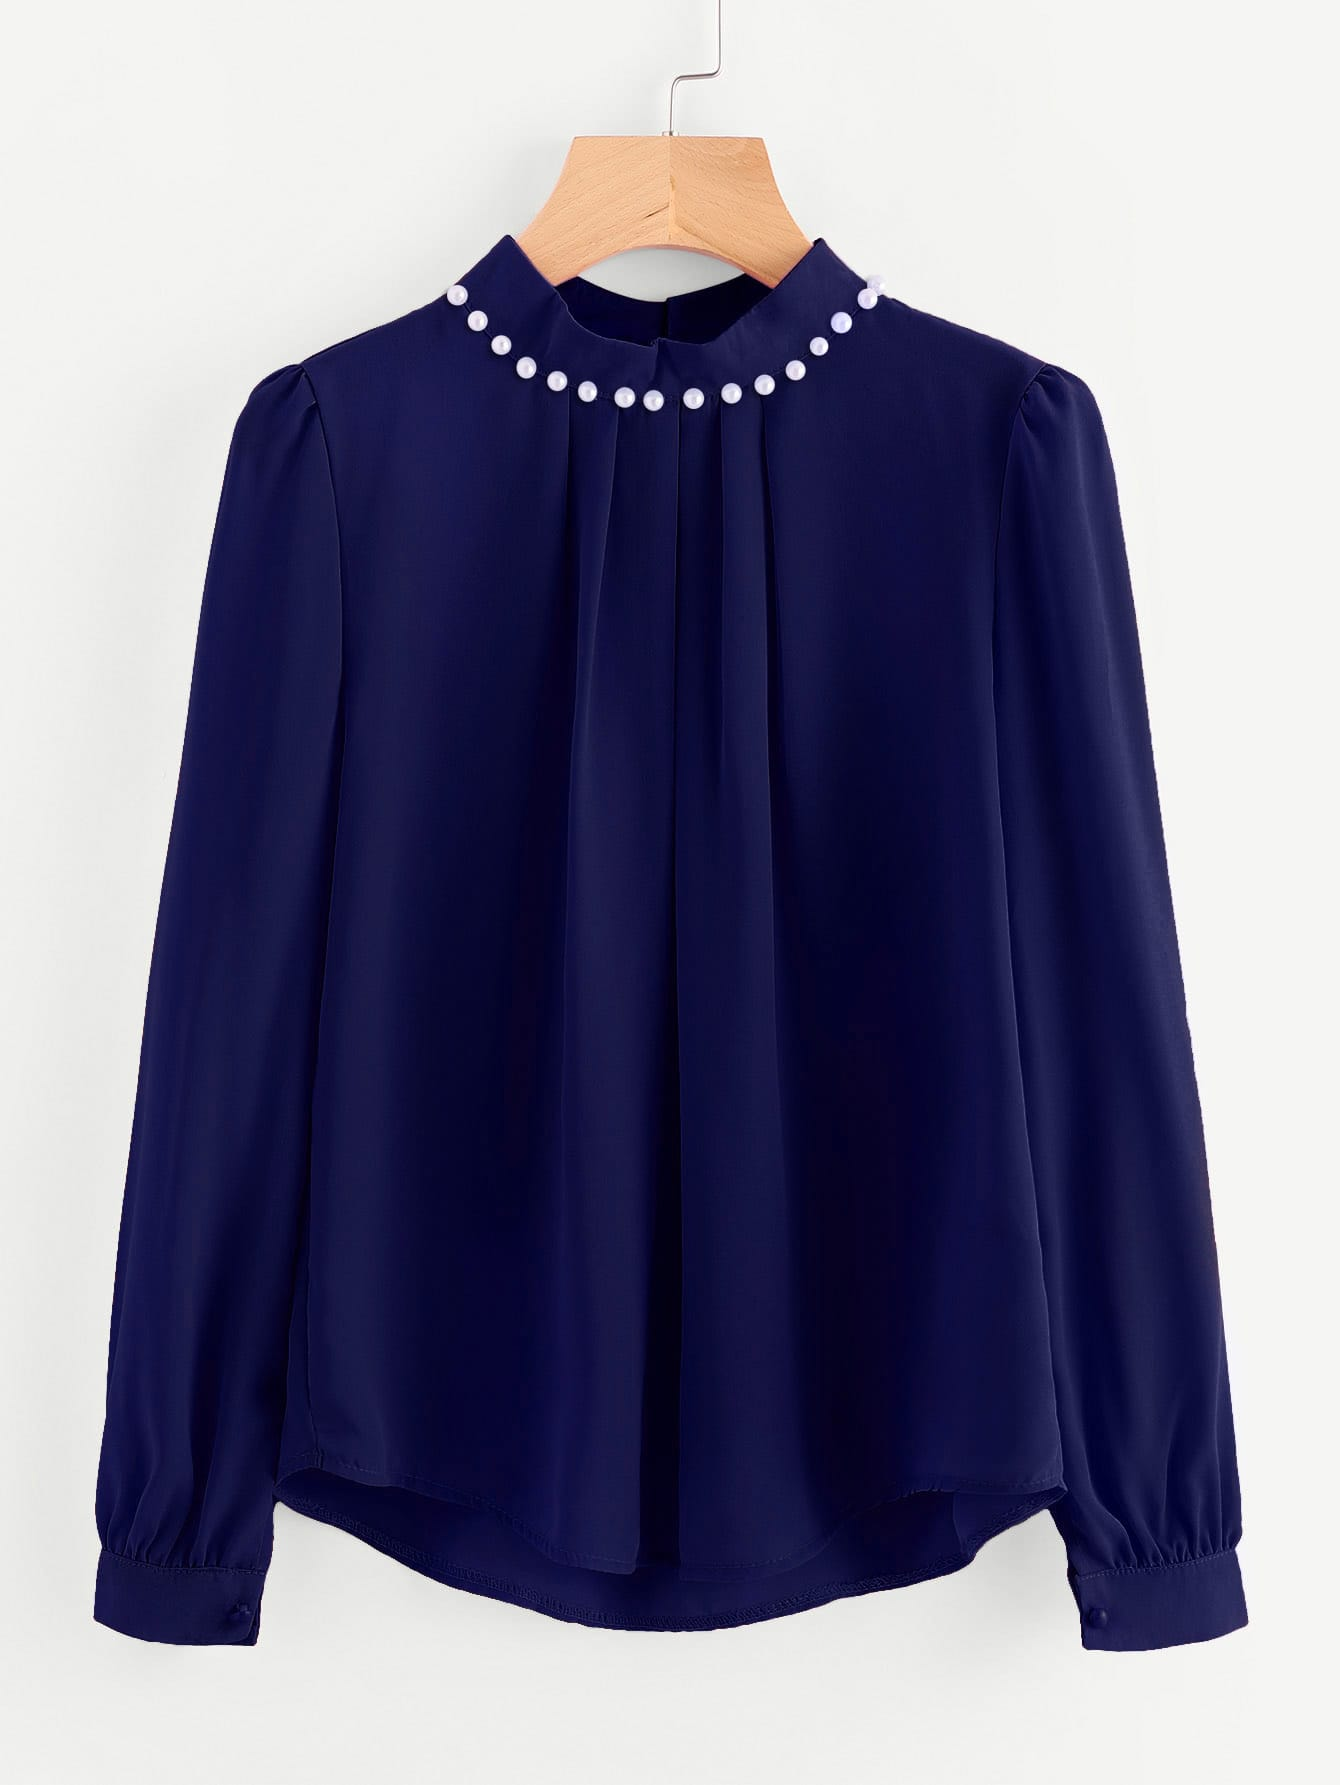 Pearl Beading Puff Sleeve Chiffon Blouse pearl beading layered sleeve top